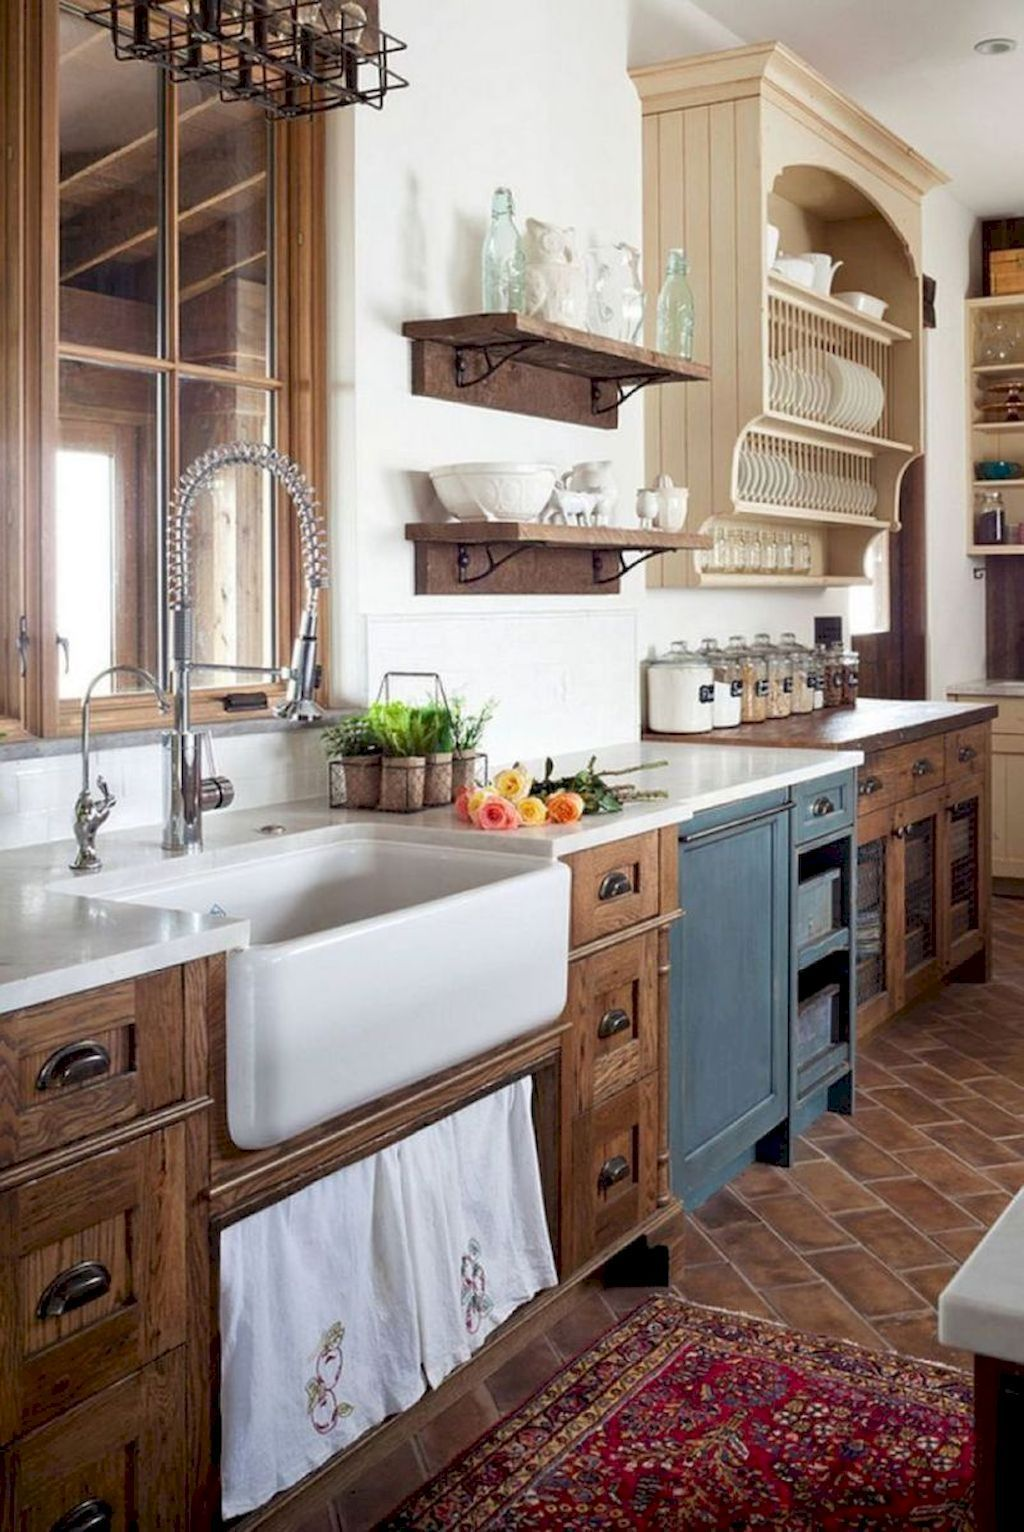 48 modern rustic farmhouse kitchen cabinets ideas in 2018 home rh pinterest com